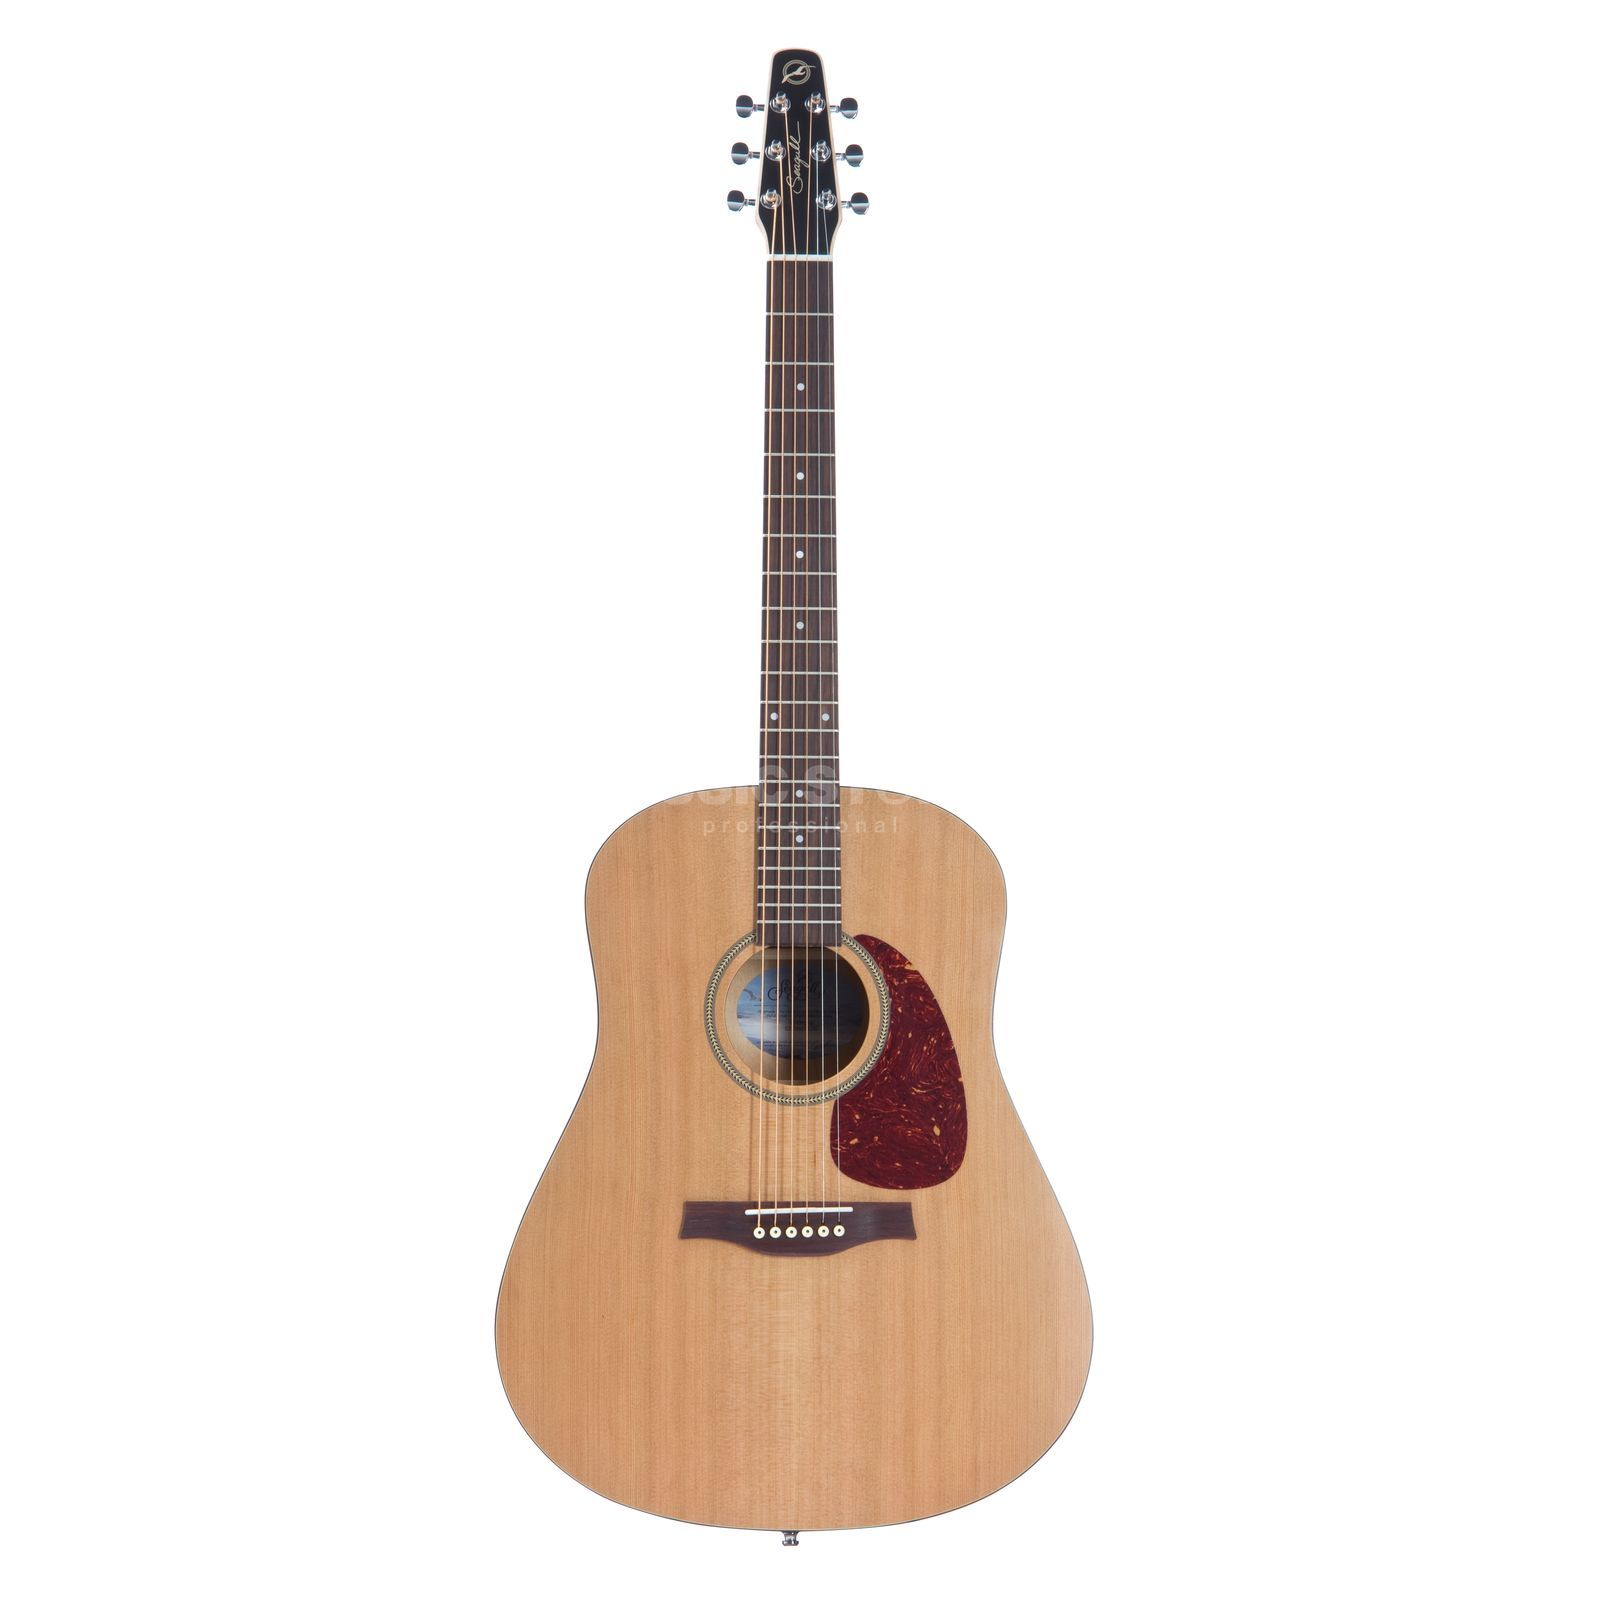 Seagull S 6 THE ORIGINAL solid Cedar Top, Nitrolack Produktbillede